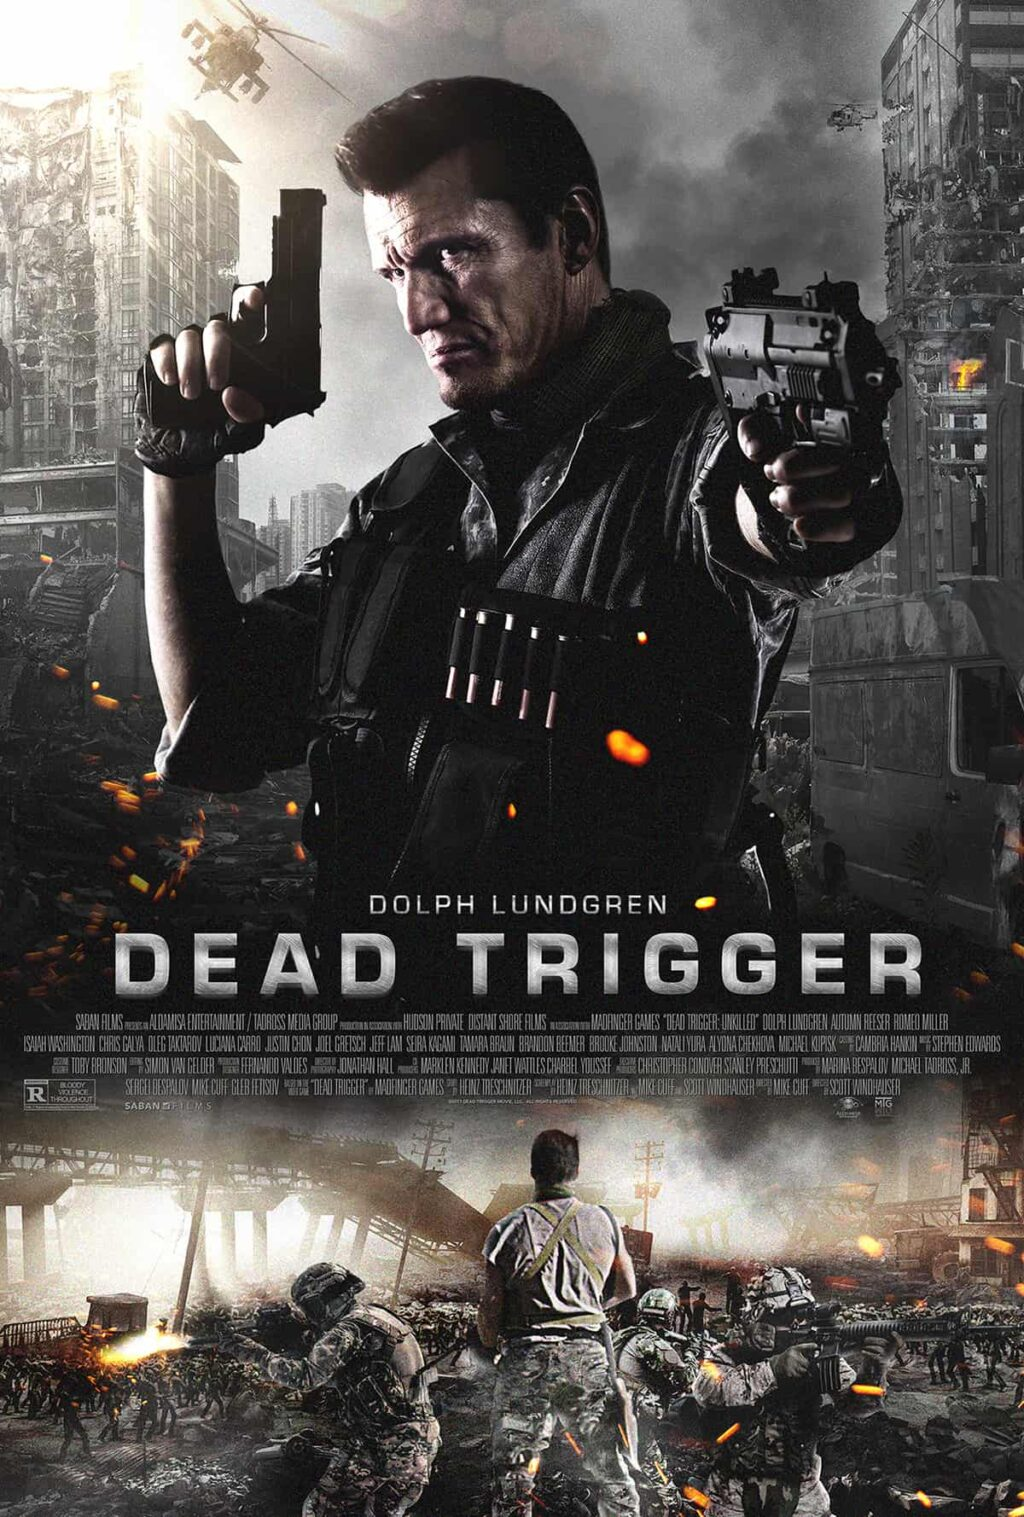 deadtrigger 1024x1517 - Dolph Lundgren Looks Like an Elderly Max Payne in This Exclusive DEAD TRIGGER Poster